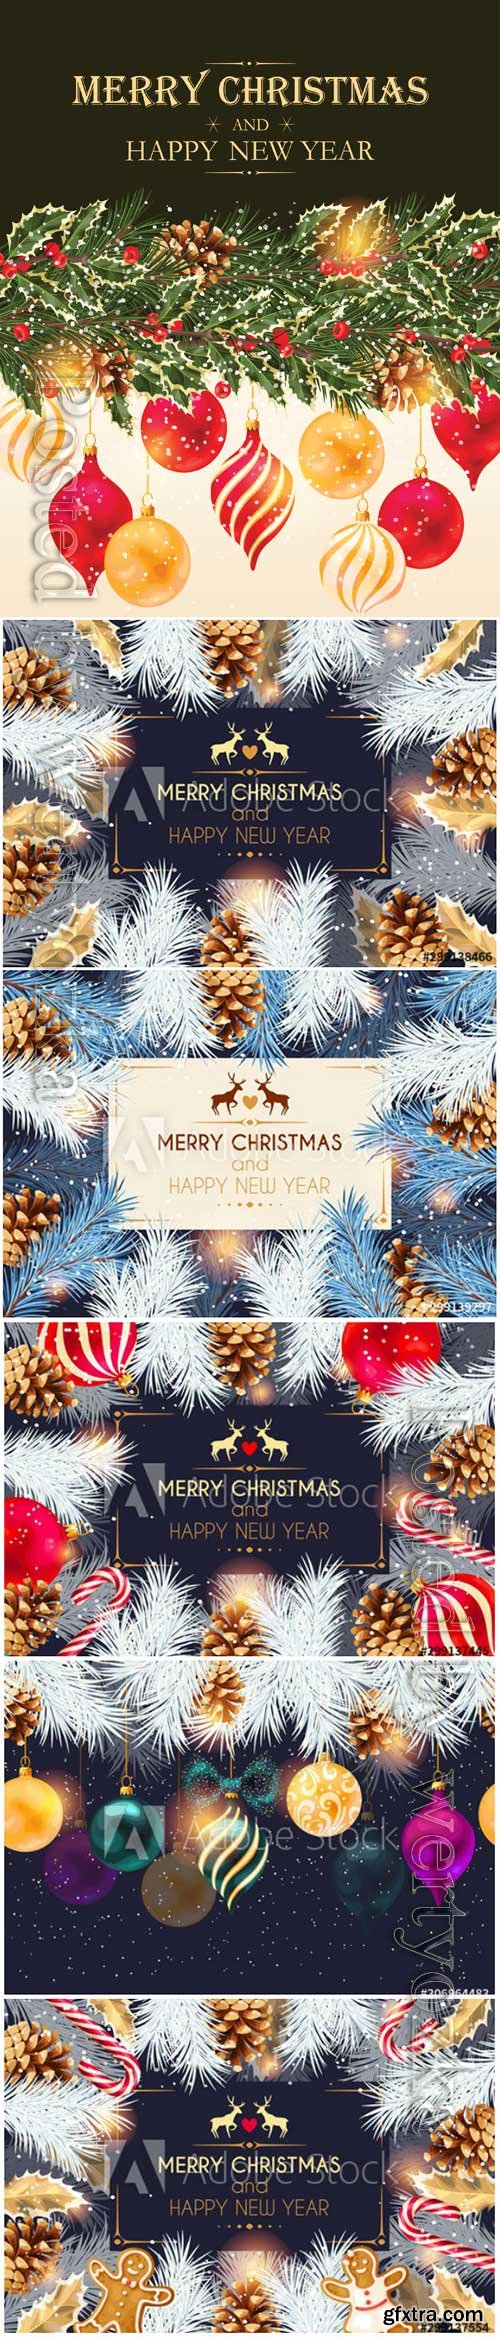 Christmas cards with cones, Christmas balls and Christmas tree